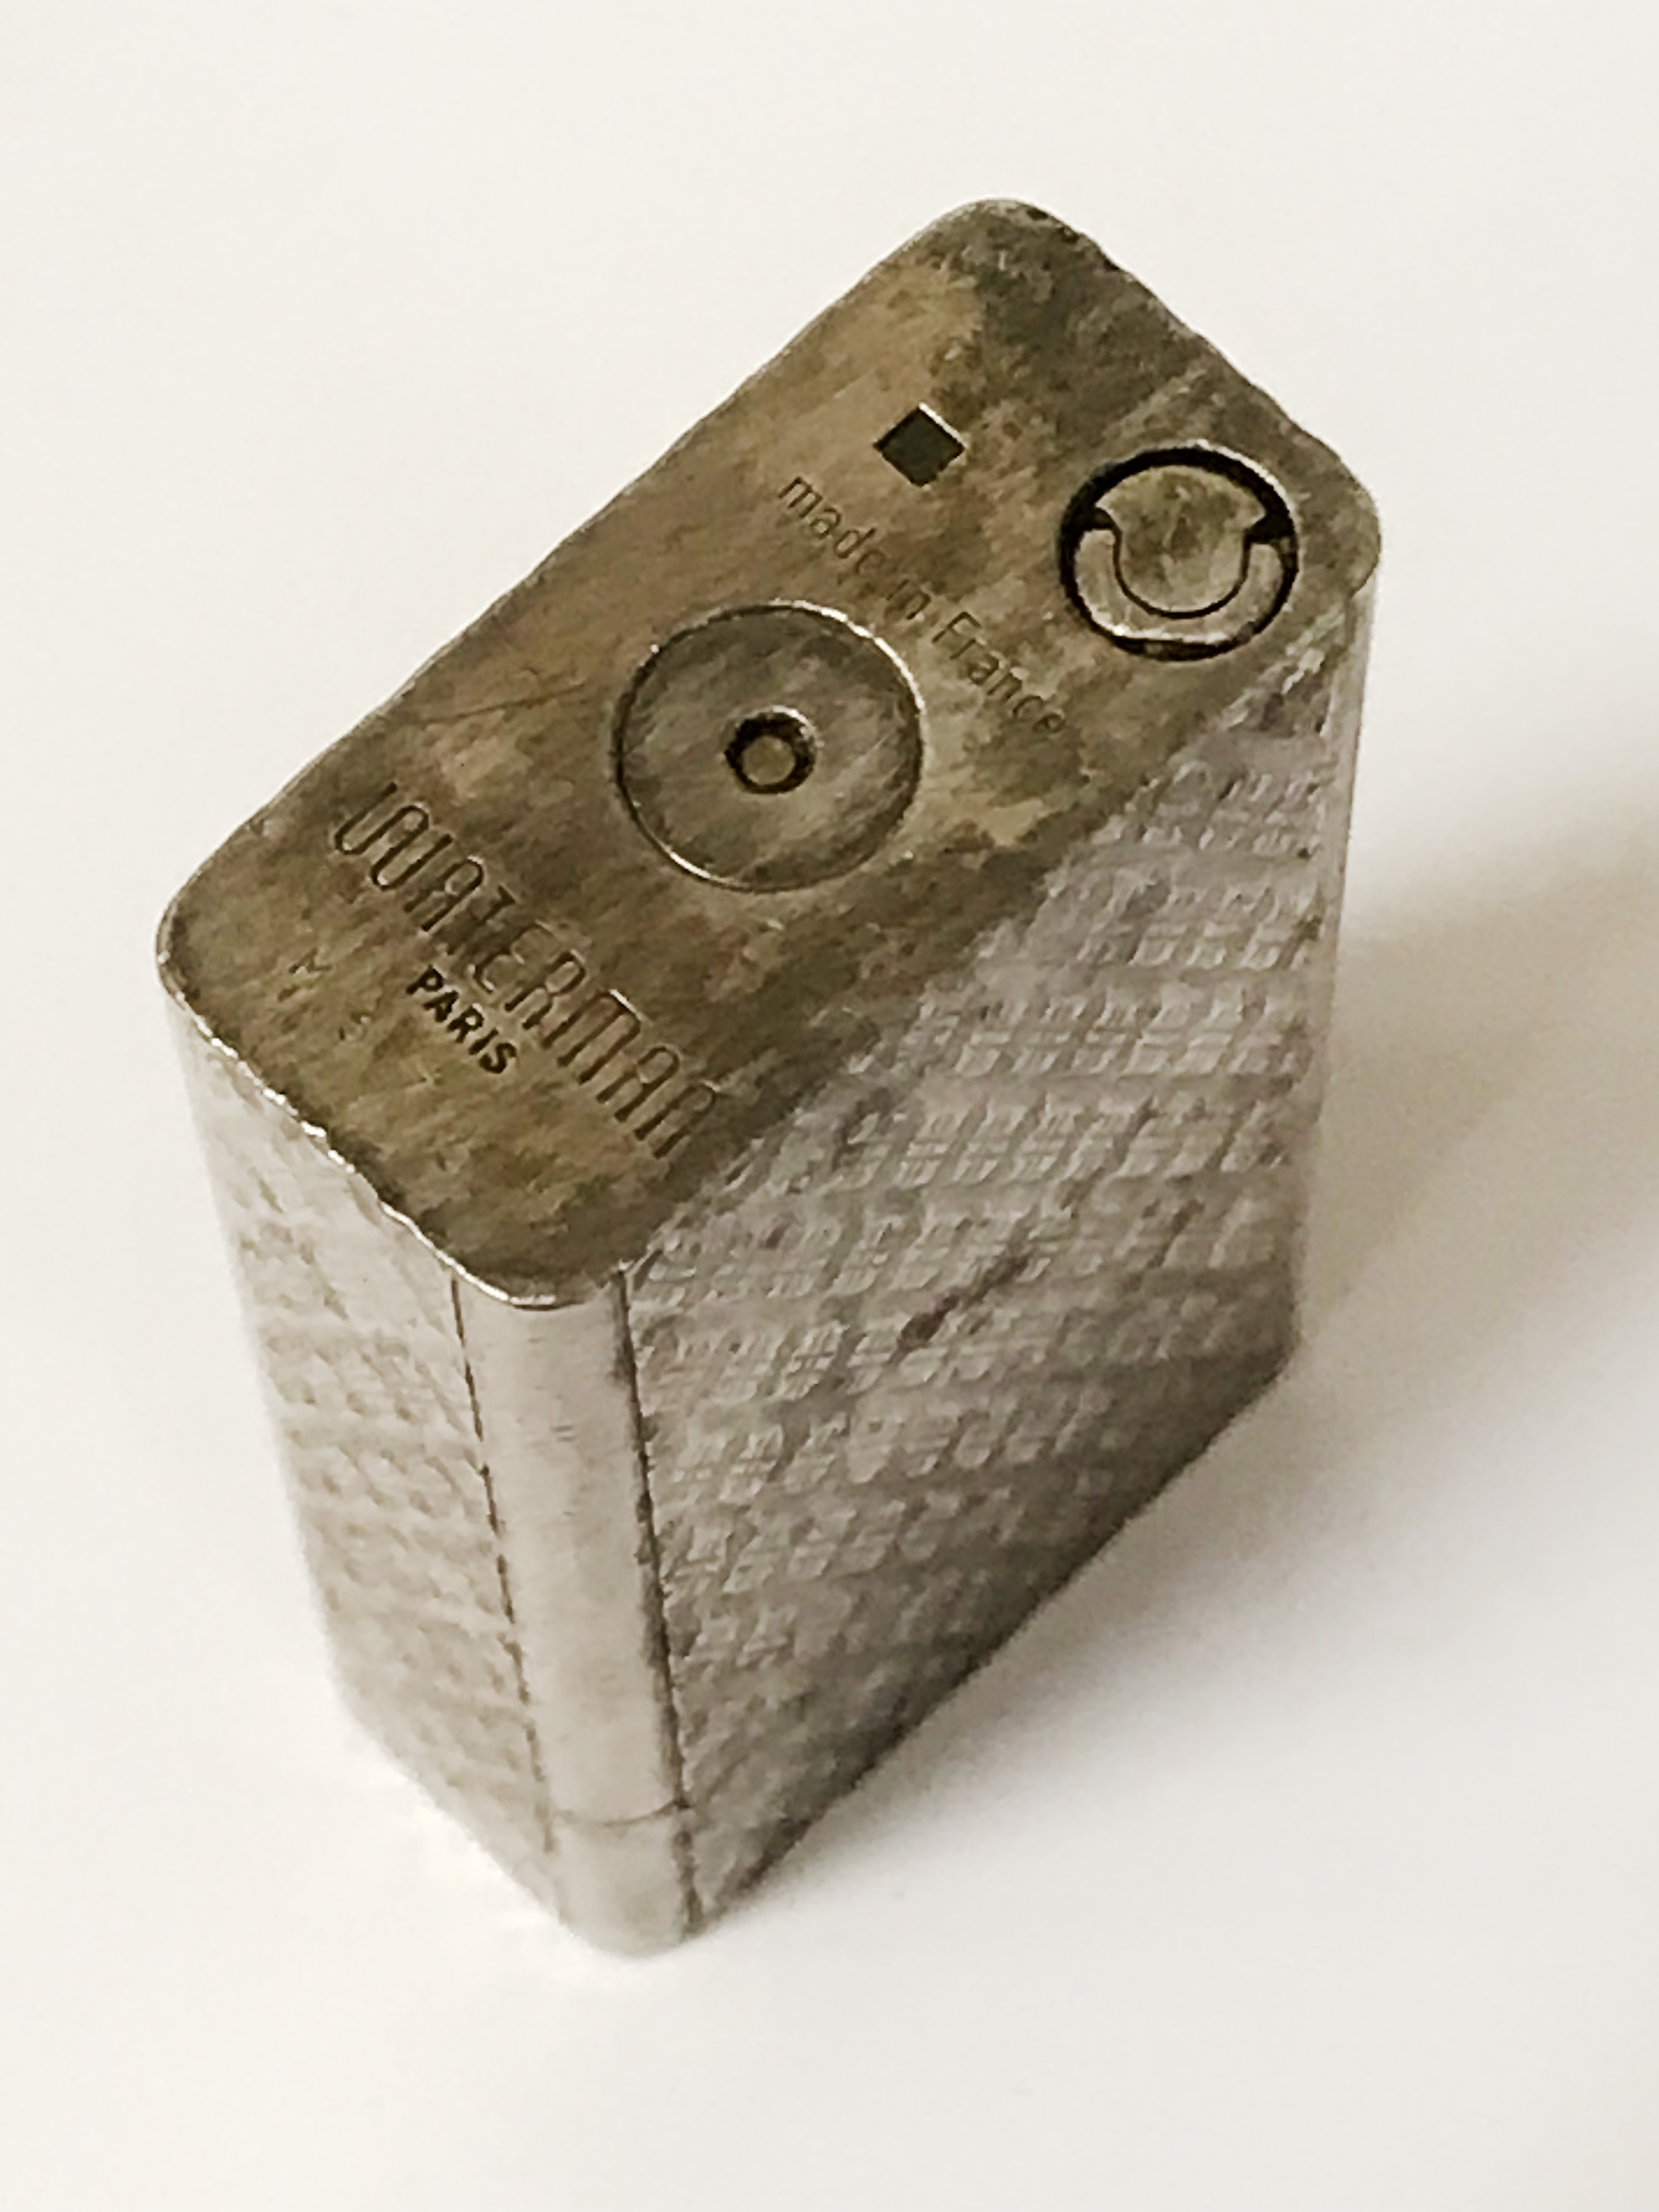 WATERMAN SILVER PLATED LIGHTER - Image 2 of 2